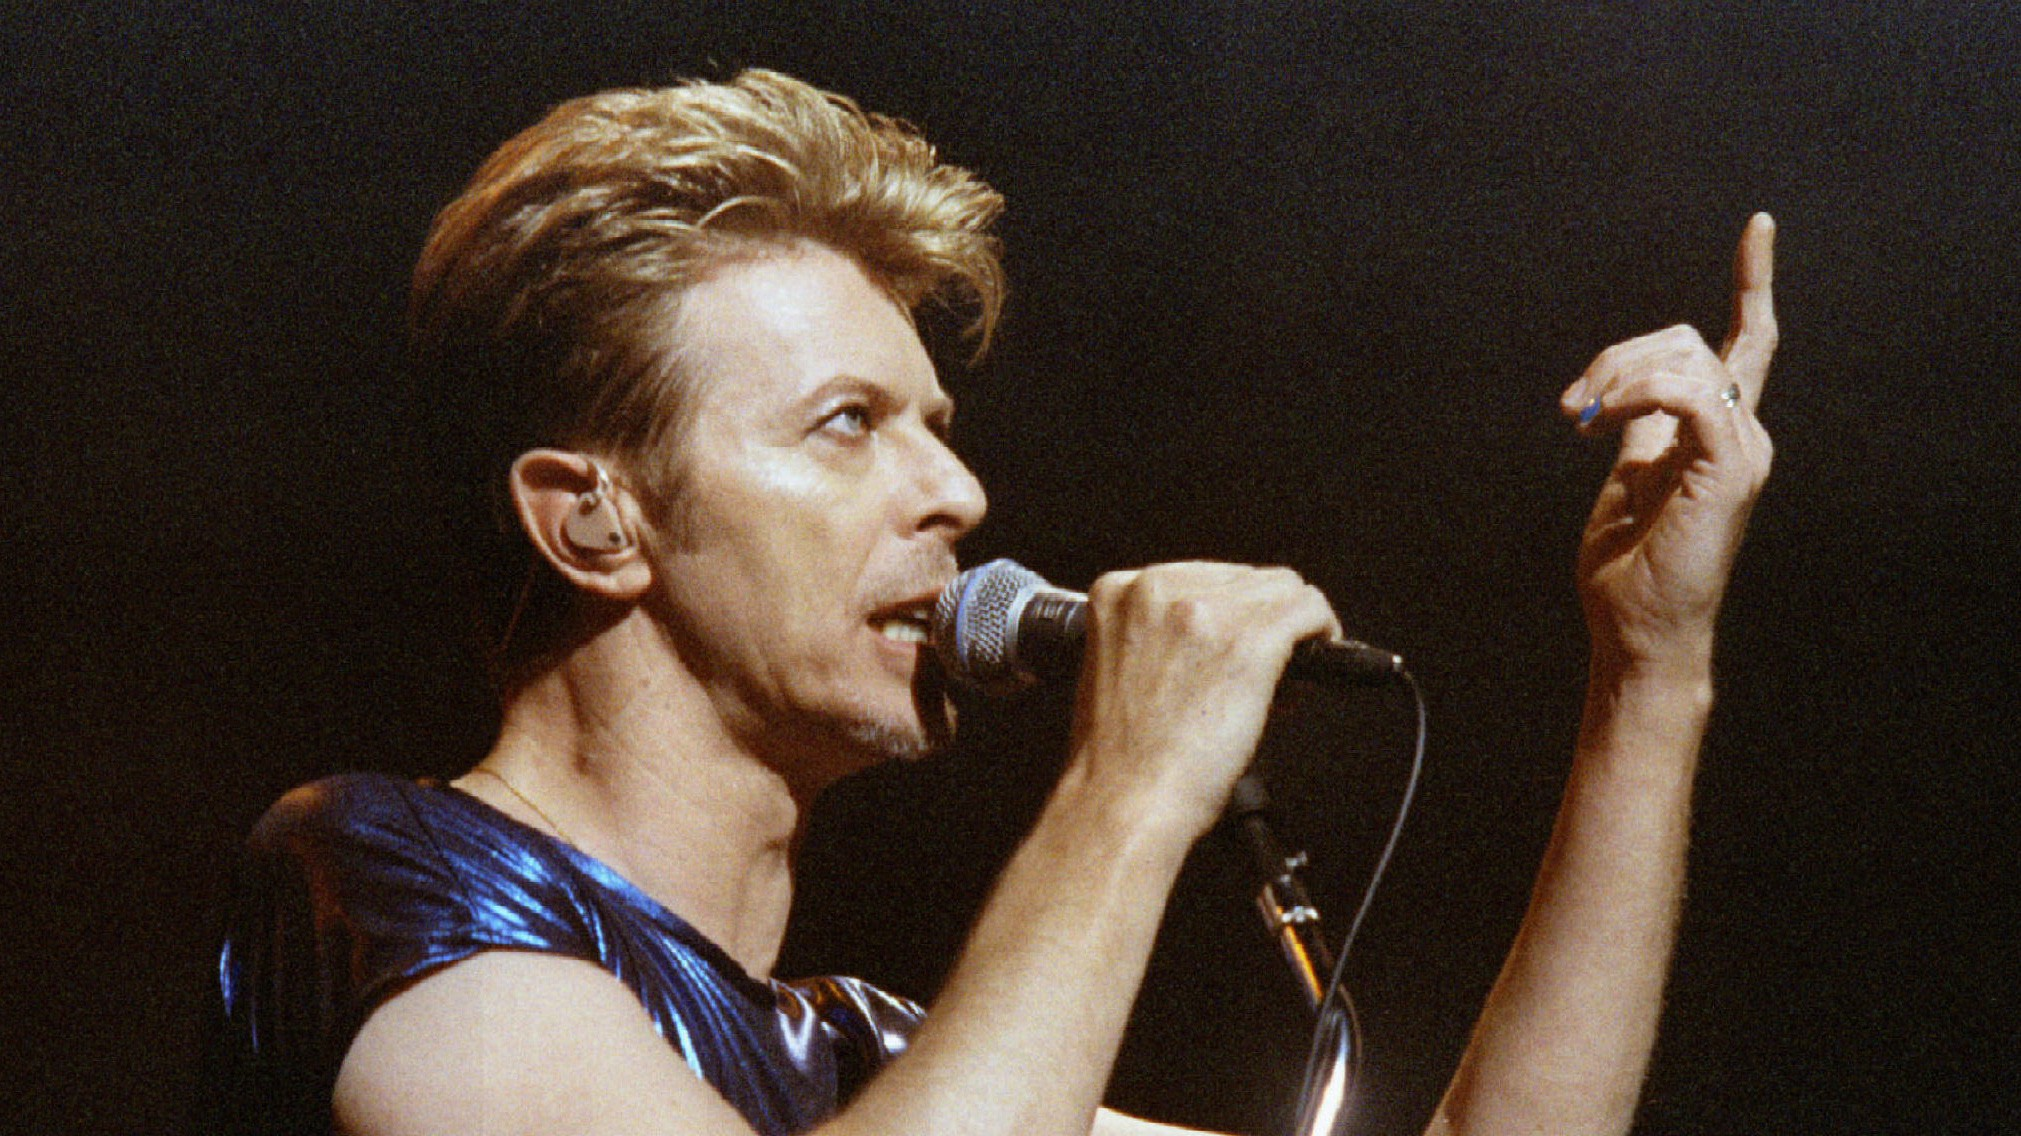 David Bowie gesturing on stage, lifting a finger.